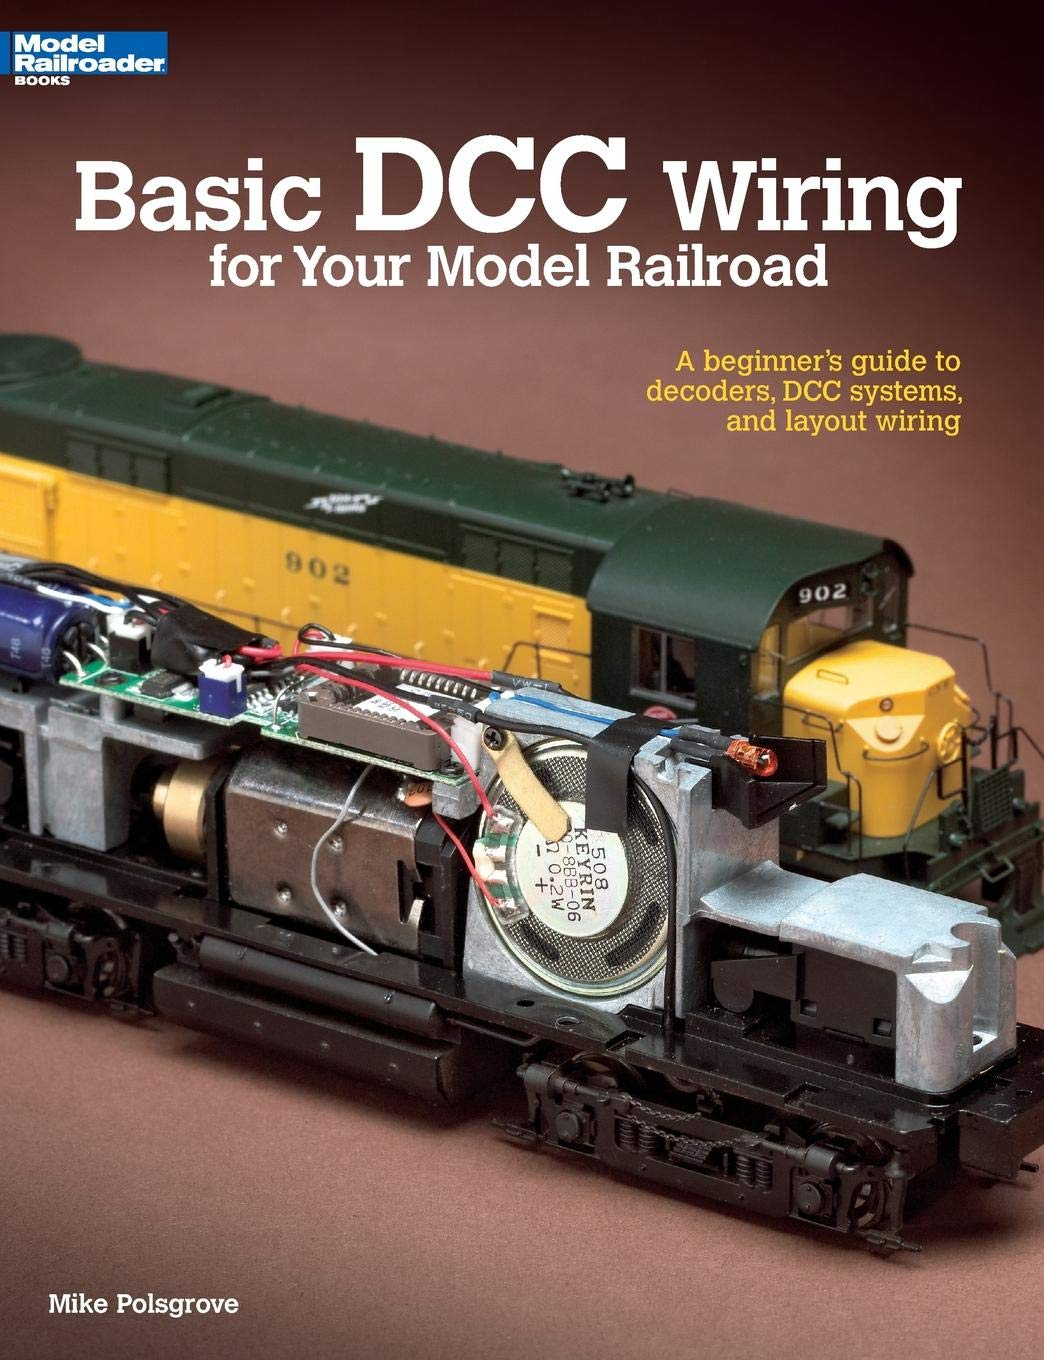 Dcc Track Wiring Basics Data Schematics Diagram Double Basic For Your Model Railroad A Beginner S Guide To Rh Amazon Com Layouts Examples